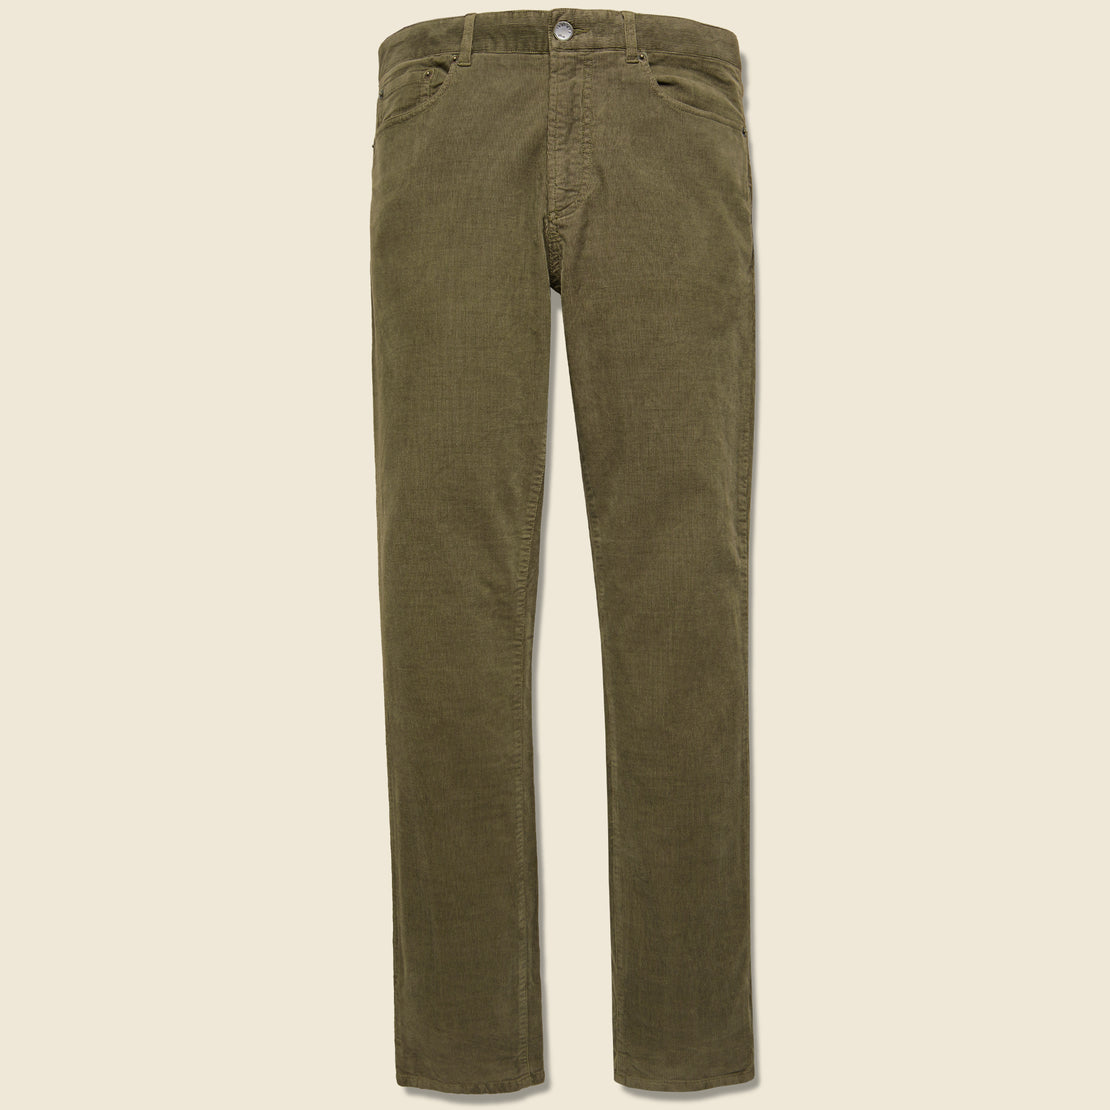 Faherty Stretch Corduroy Pant - Timber